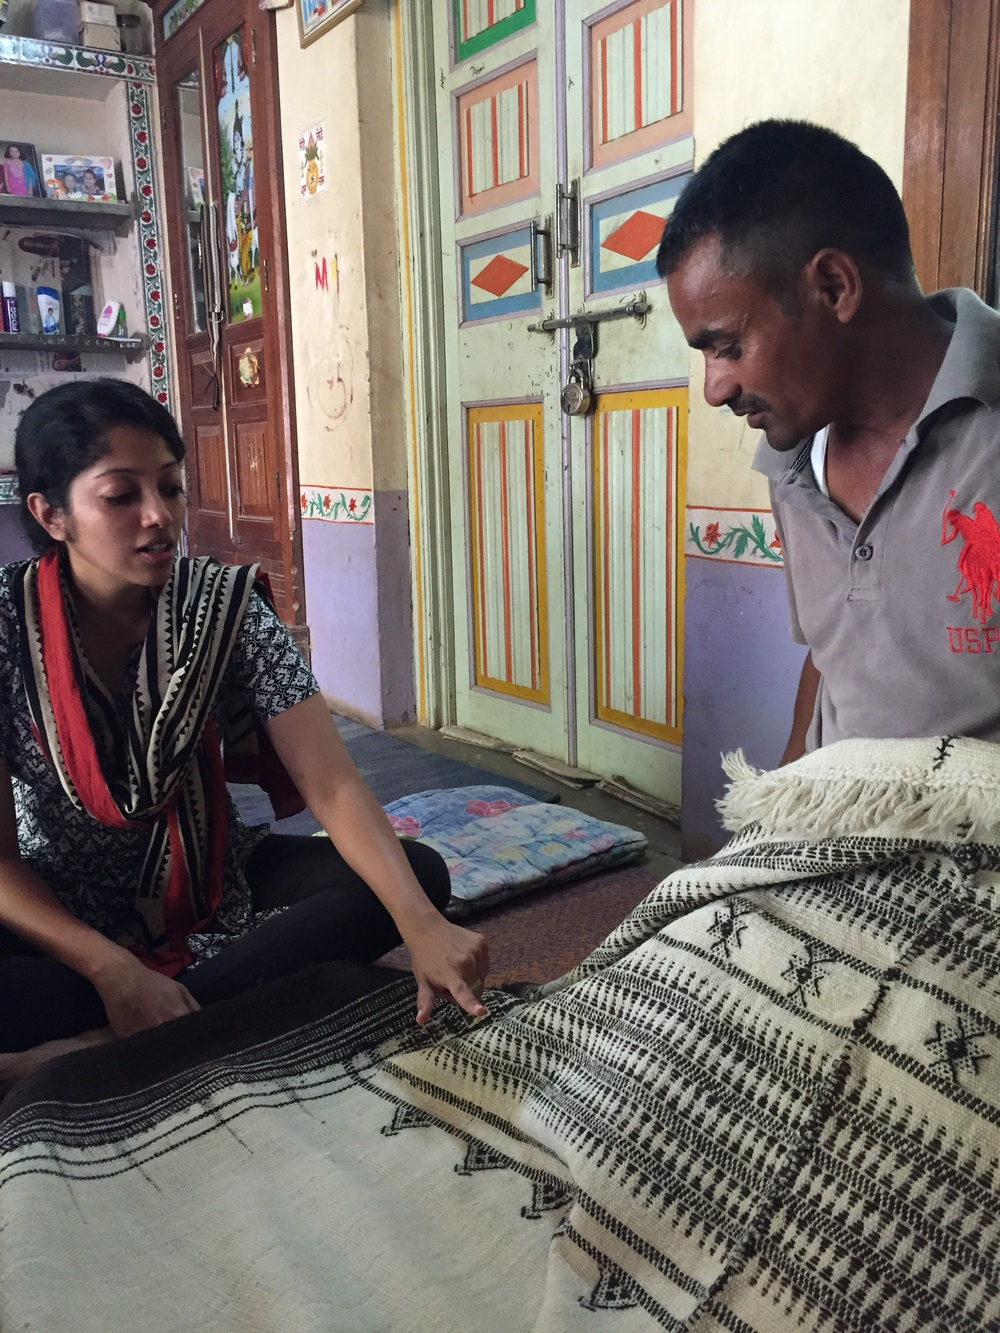 Arushi chats with Ramji about this handwoven blanket during our #ExploreTheInitiative adventure to Gujarat.